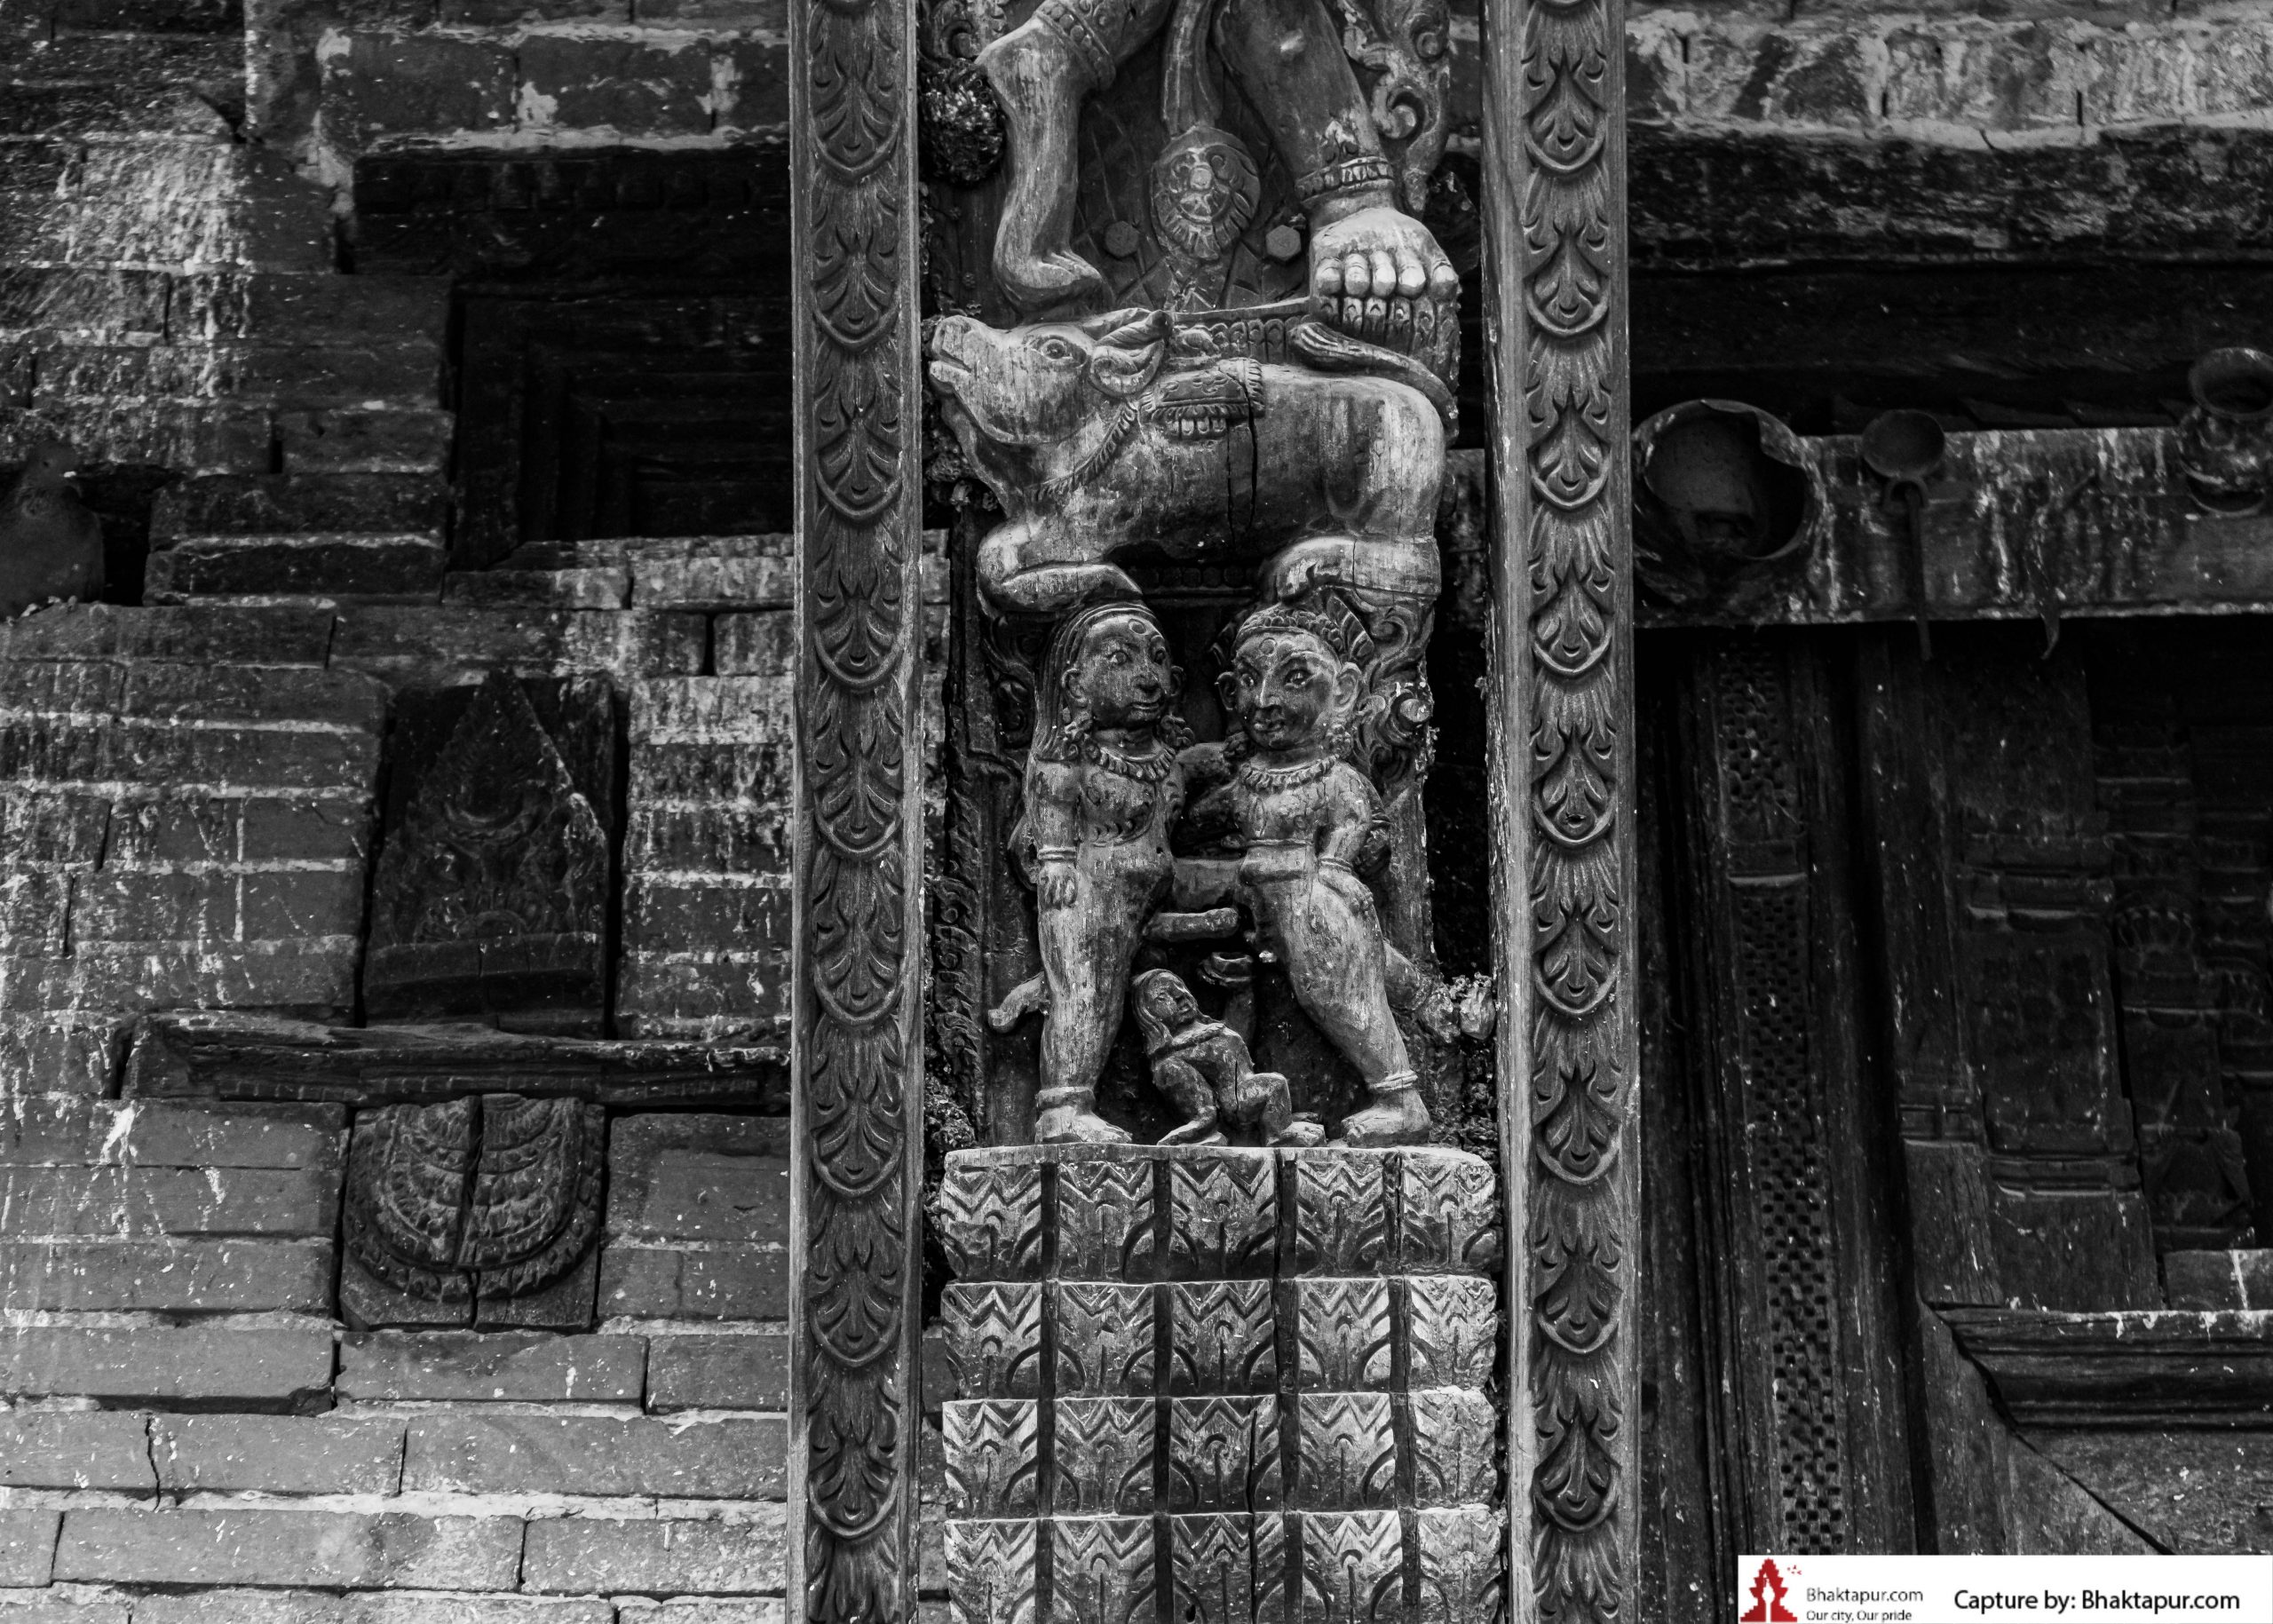 https://www.bhaktapur.com/wp-content/uploads/2021/08/erotic-carving-89-of-137-scaled.jpg